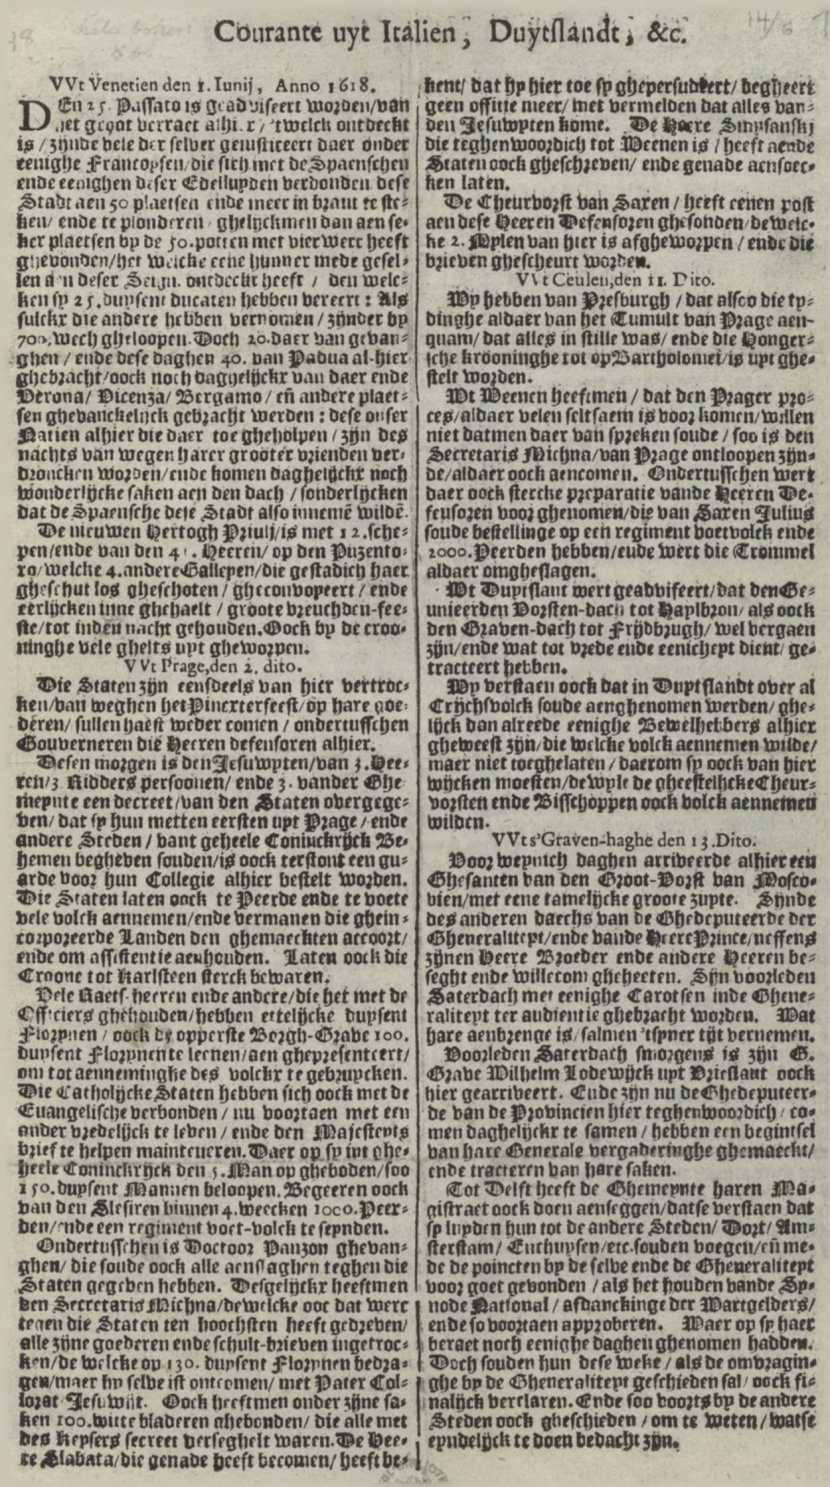 Issue of the Courante